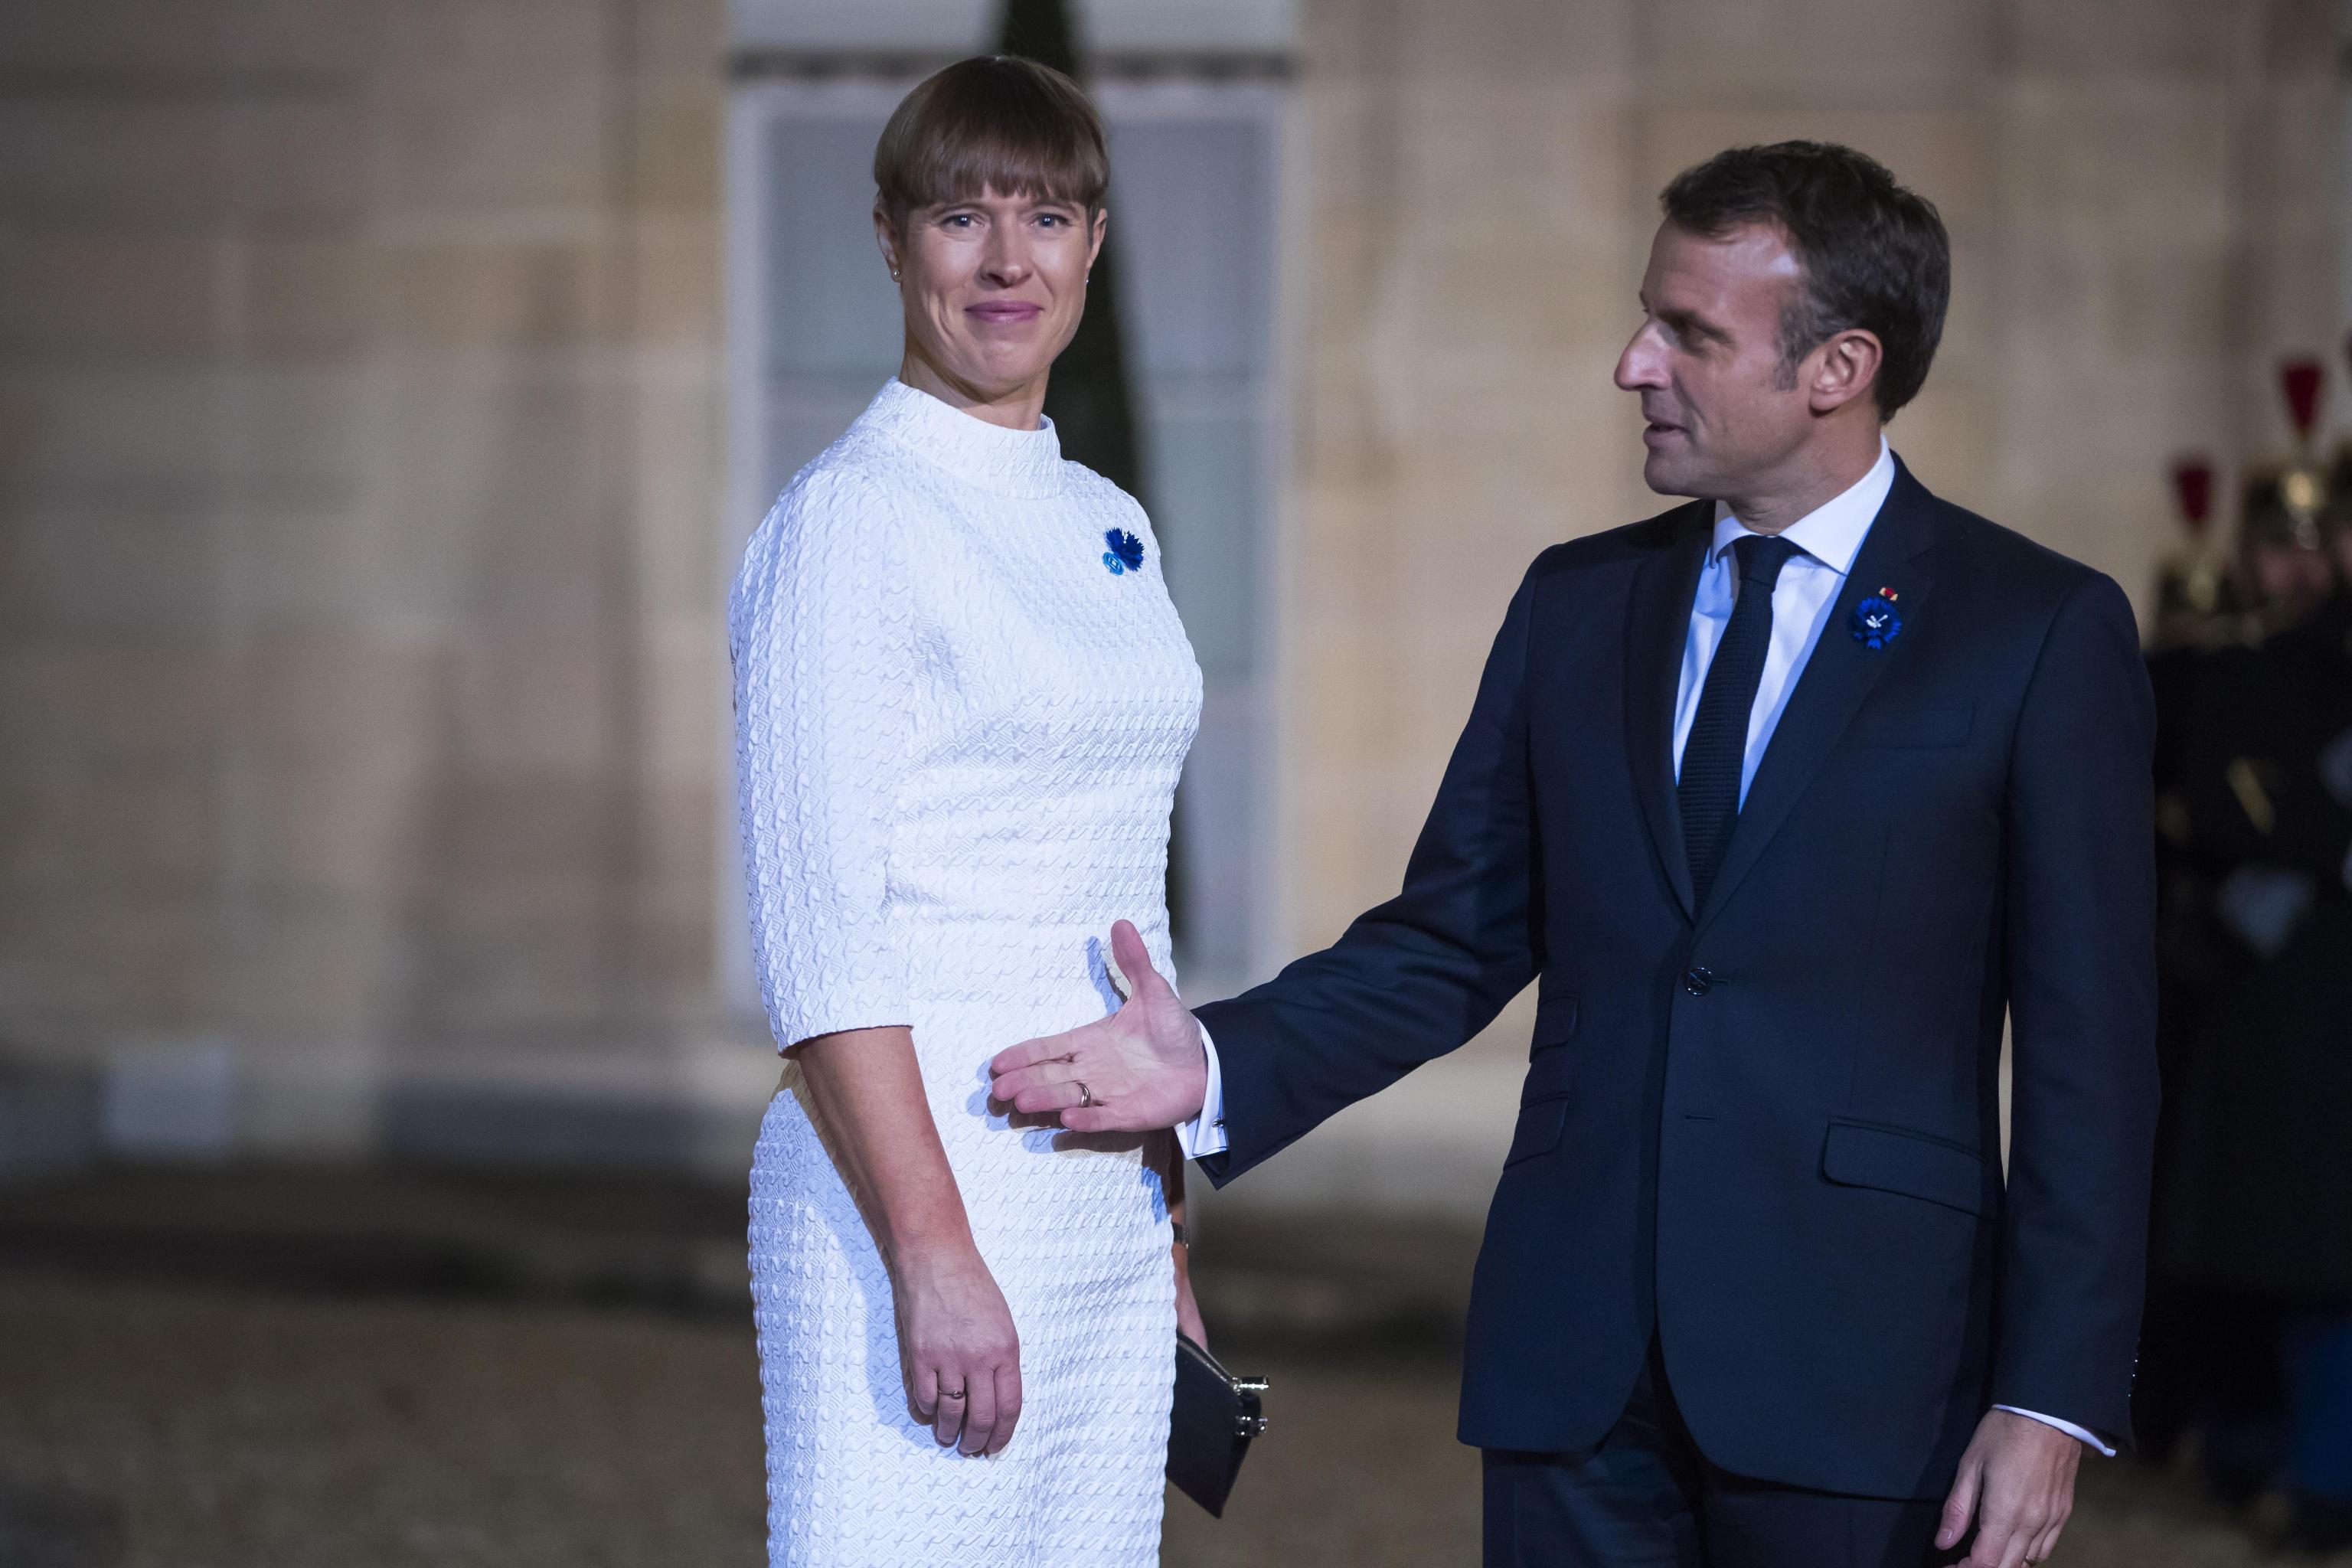 epa07989435 French President Emmanuel Macron (R) welcomes Estonian president Kersti Kaljulaid (L) for a dinner held with participants of the Paris Peace Forum, at the Elysee Palace, in Paris, France, 11 November 2019.  EPA/CHRISTOPHE PETIT TESSON